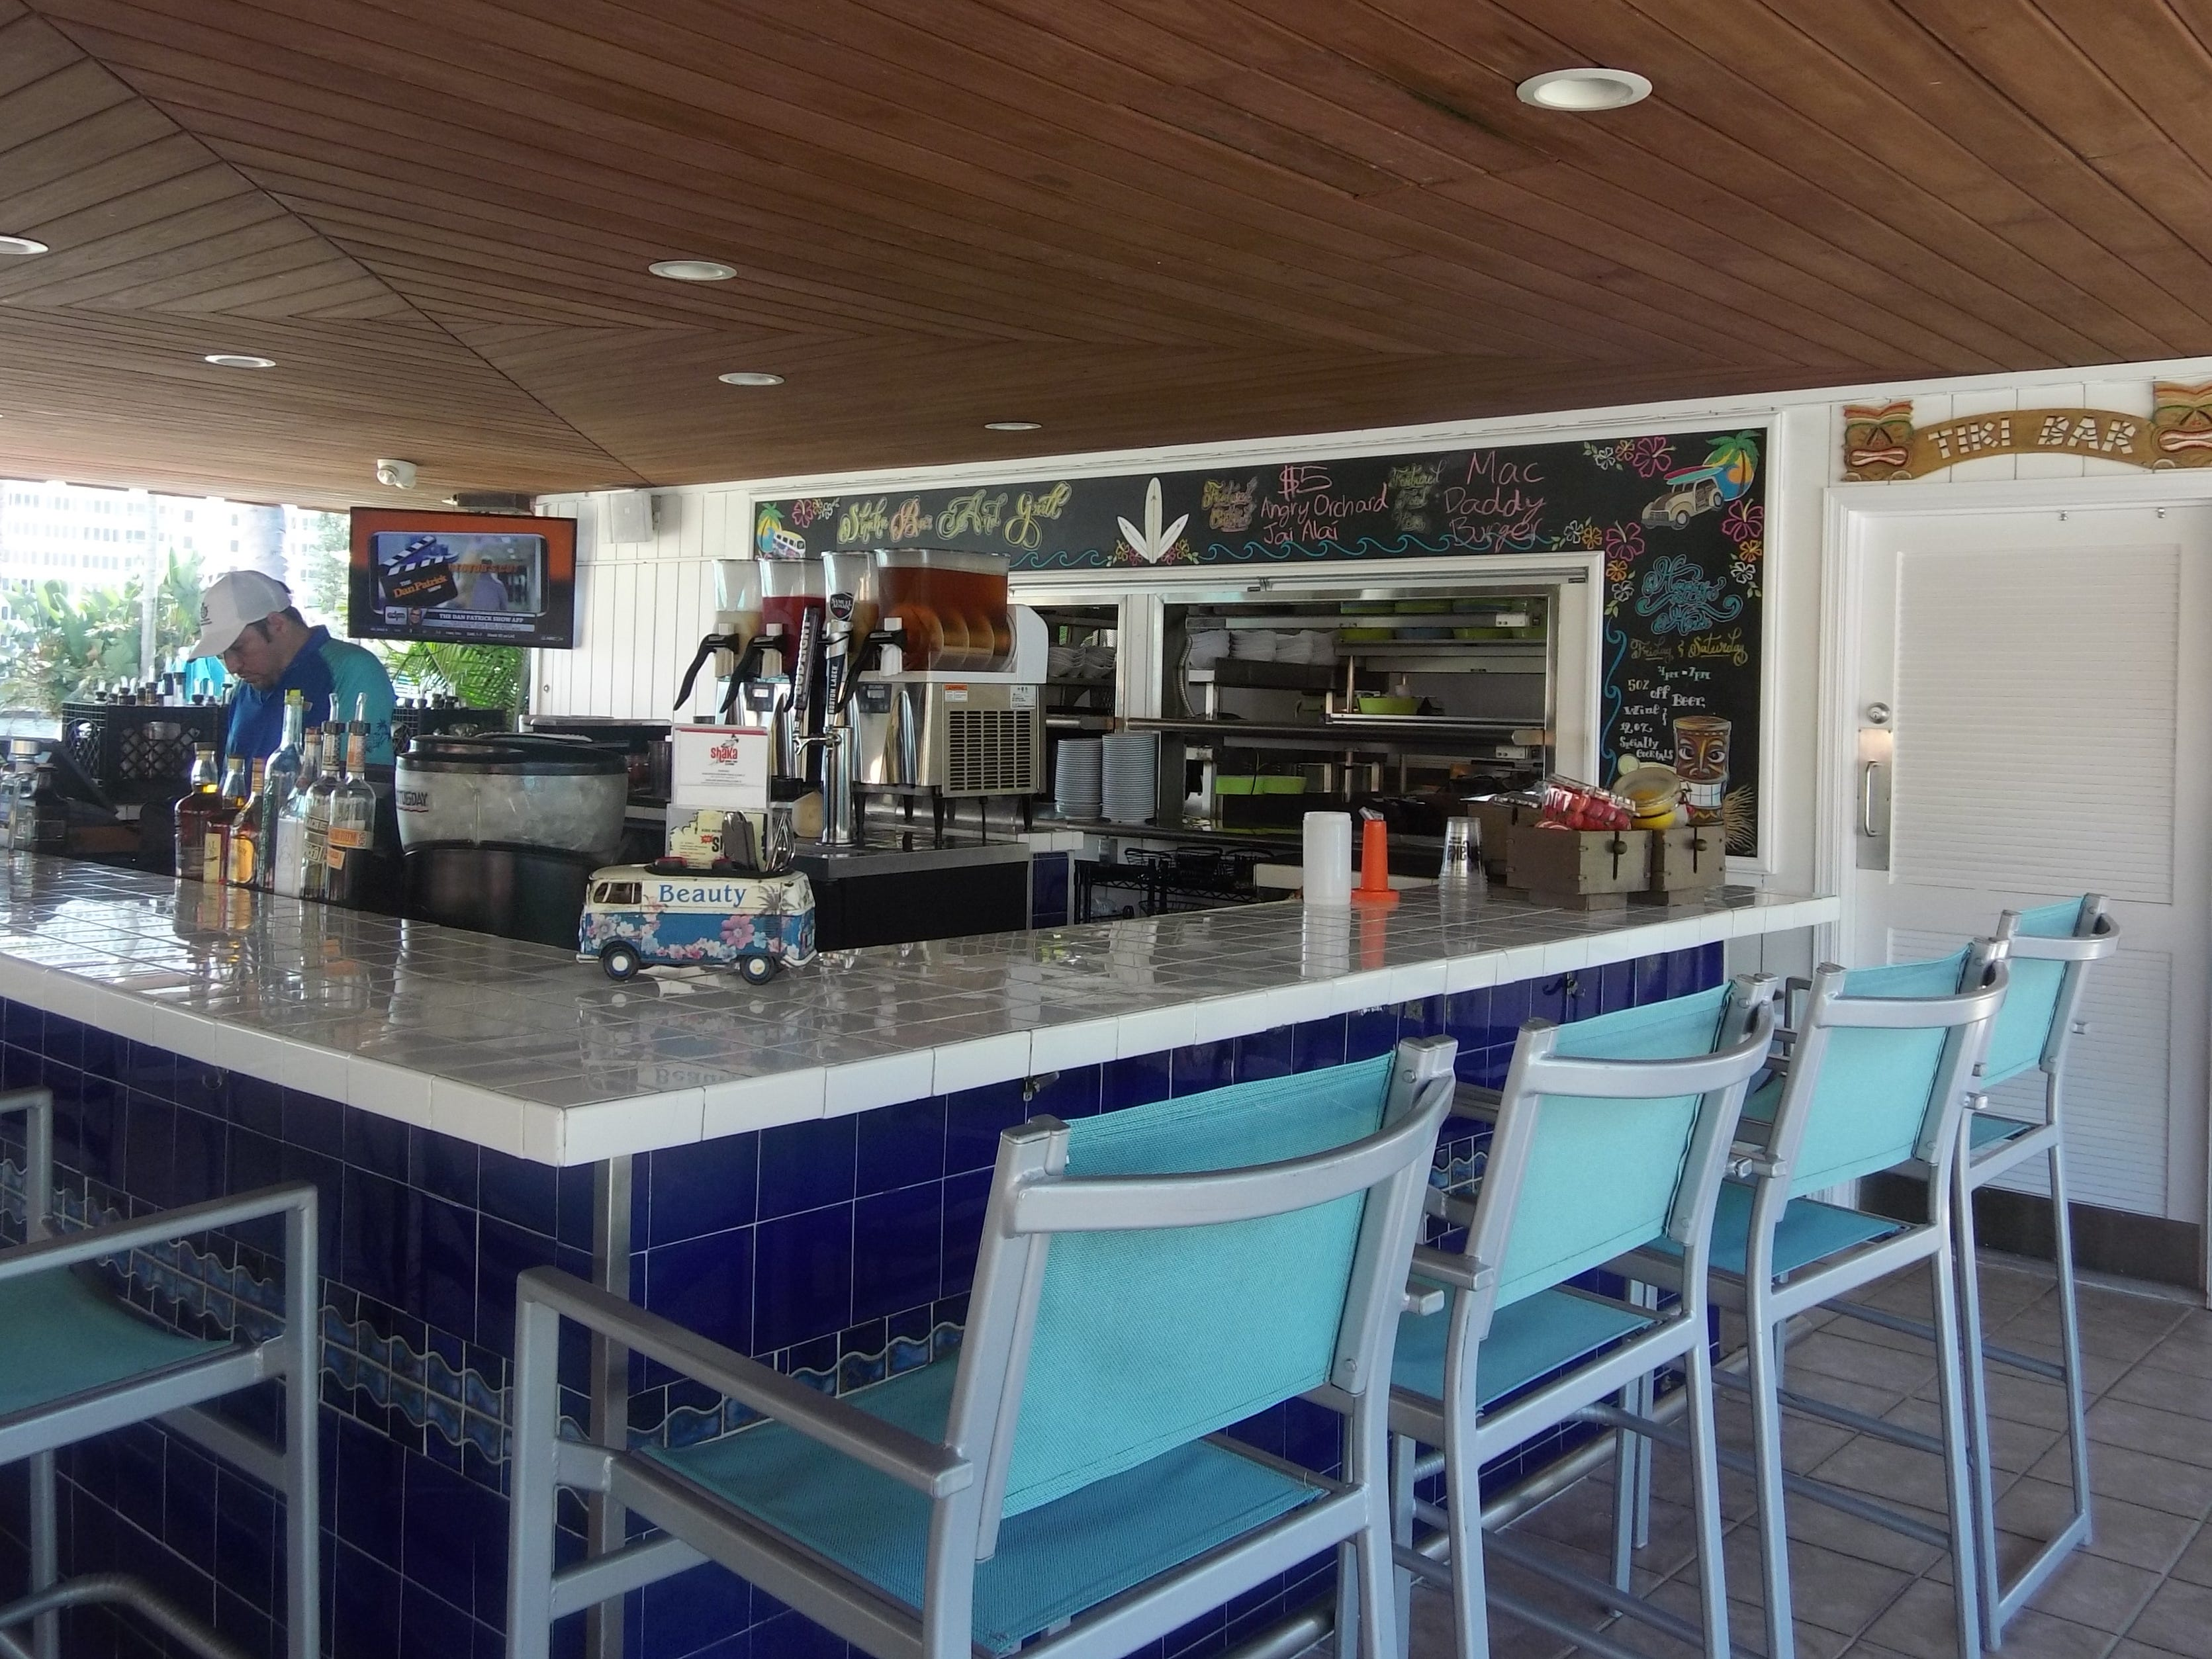 Poolside Shaka Bar & Grill serves lunch and early dinner at Boca Raton Resort & Club.